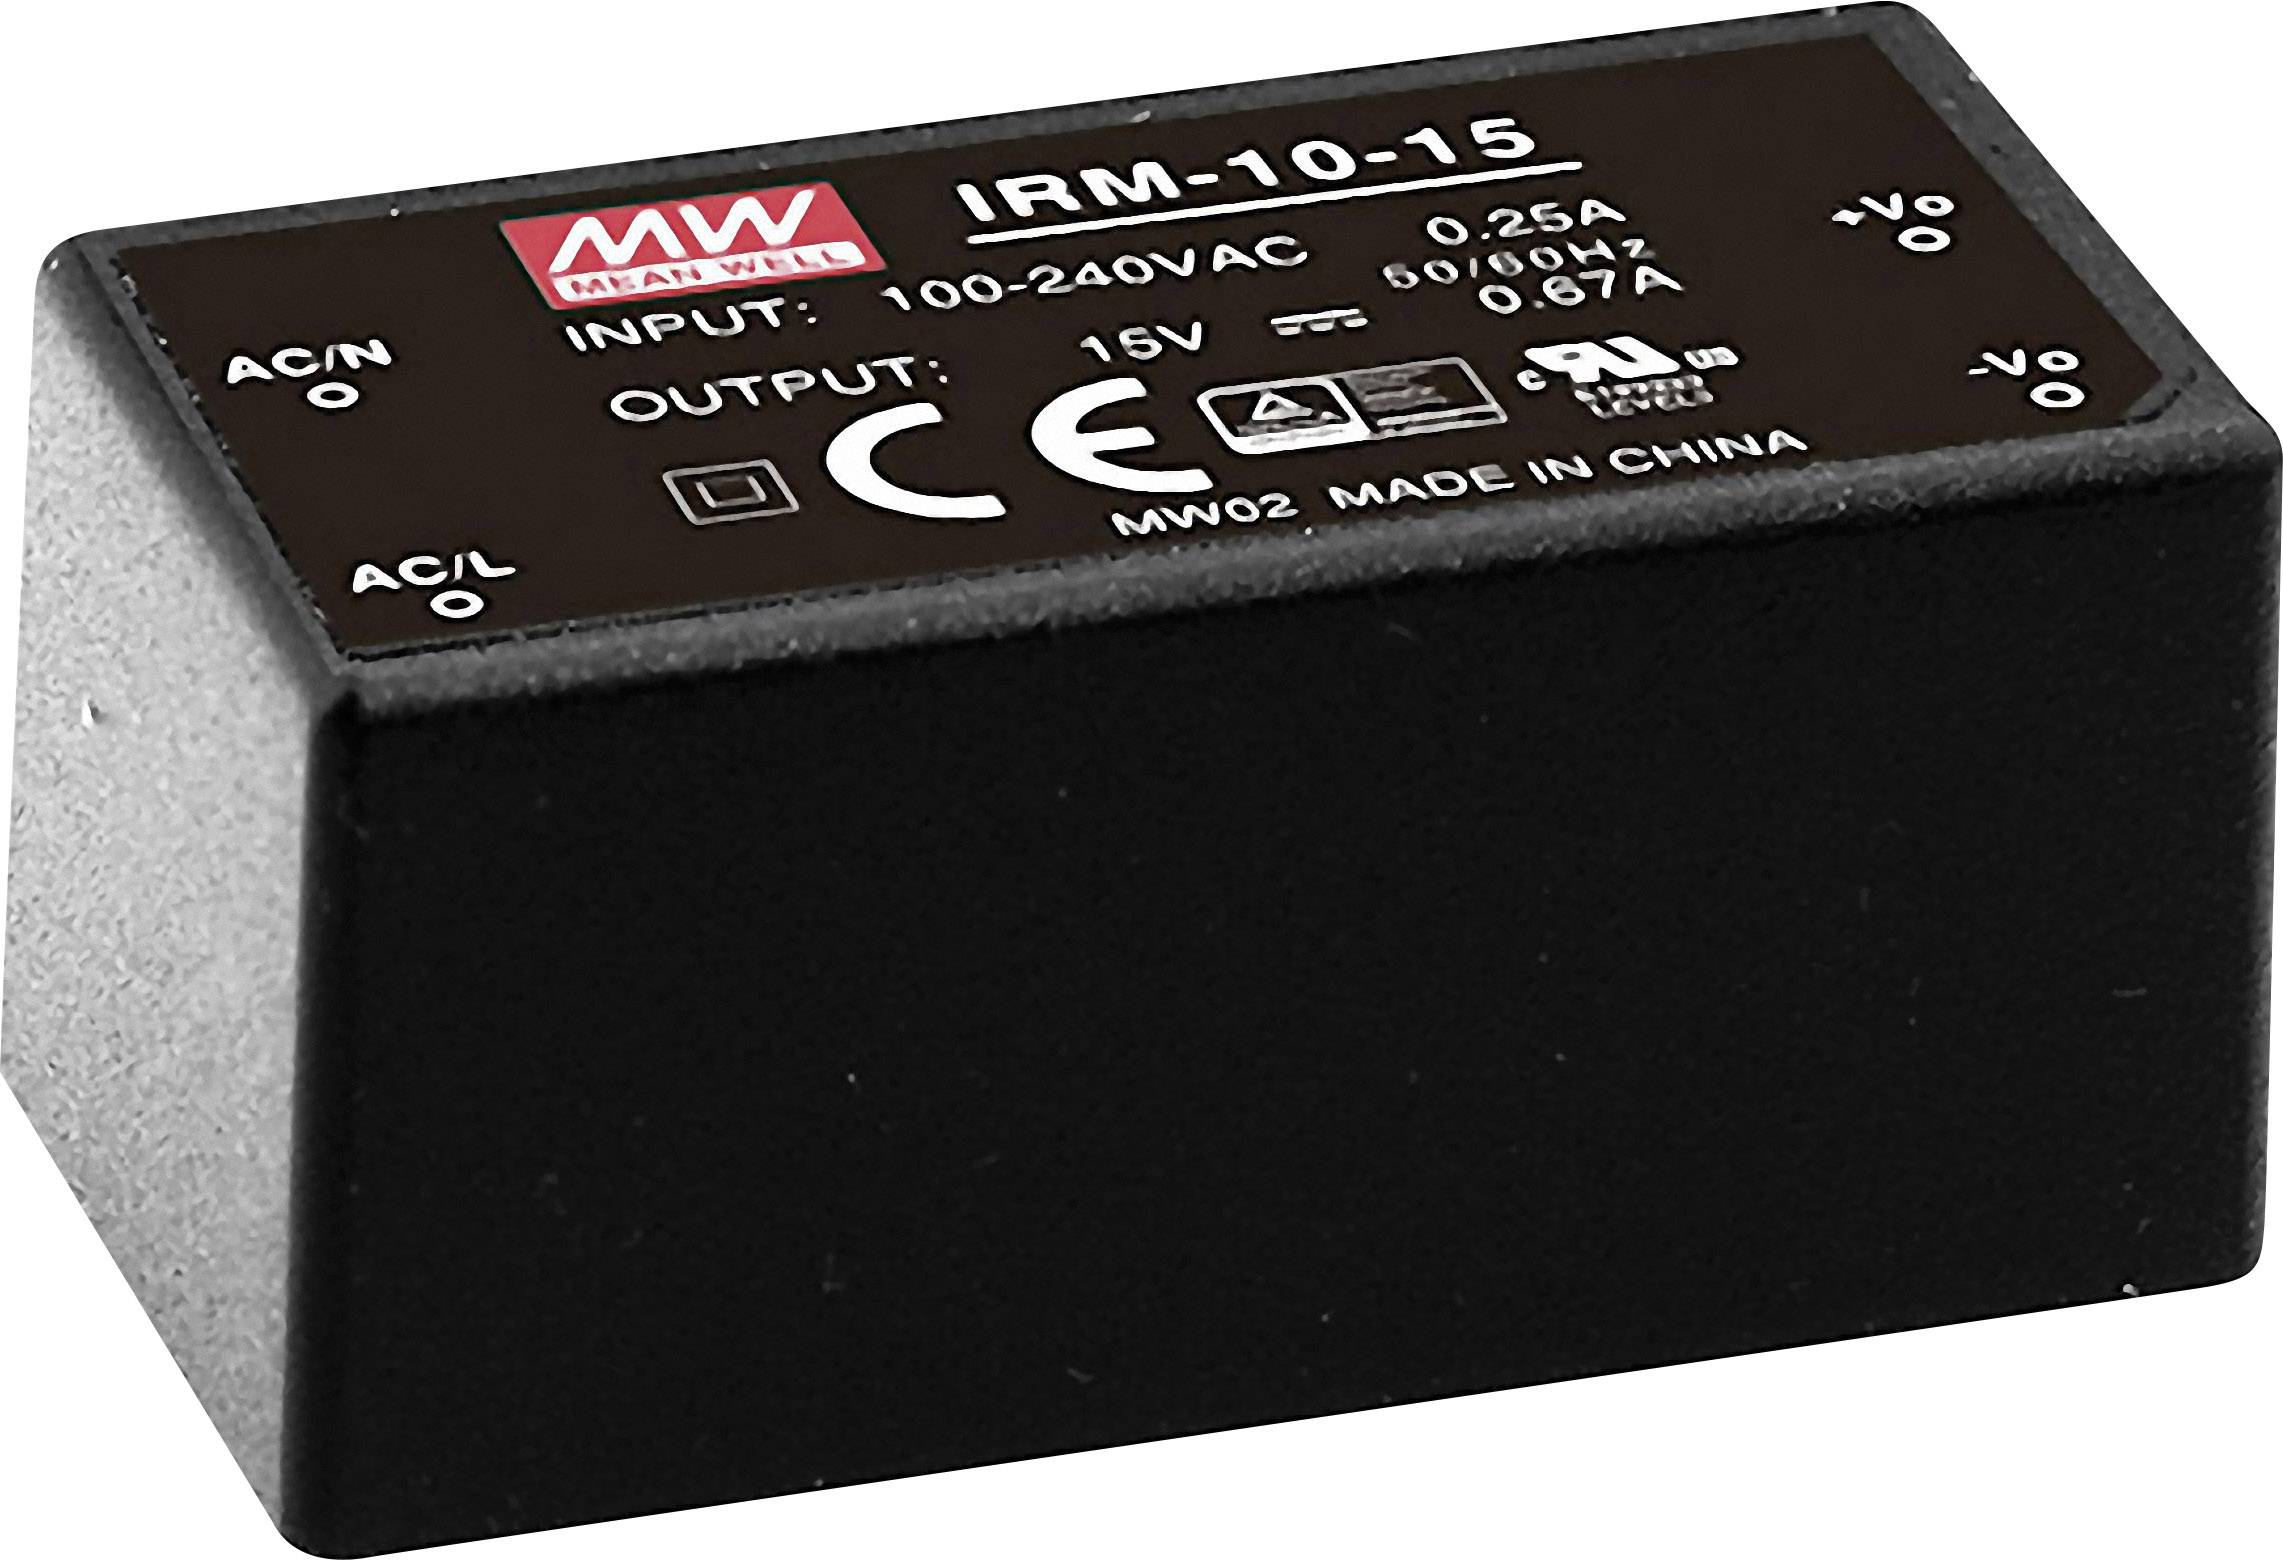 AC/DC zdroj do DPS Mean Well IRM-10-5, 5 V/DC, 2 A, 10 W